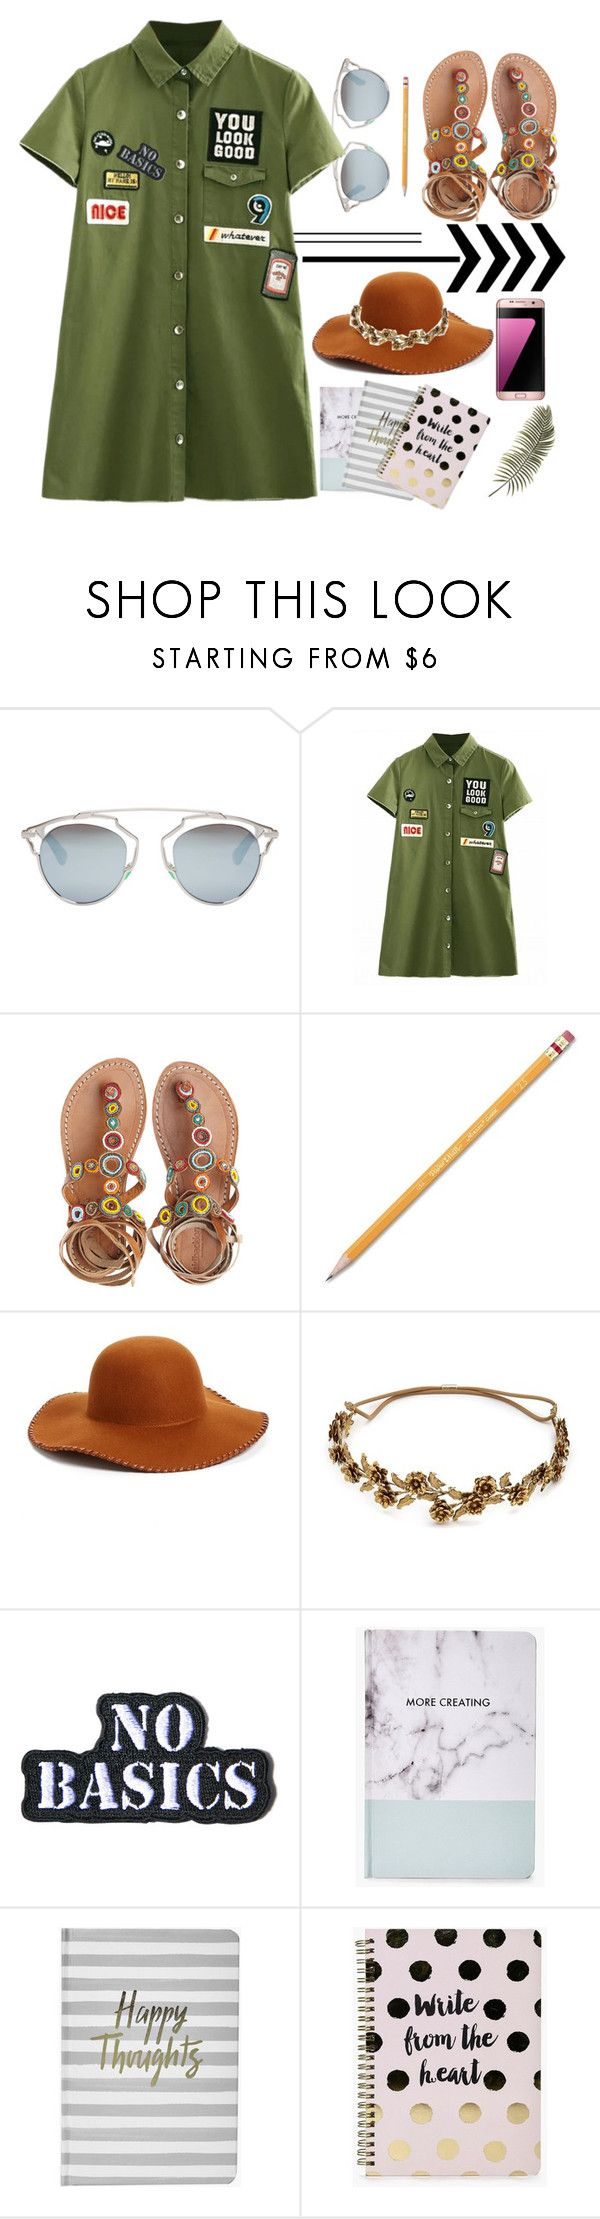 """""""OOTD"""" by dikenn ❤ liked on Polyvore featuring Christian Dior, Laidback London, Paper Mate, Phase 3, Jennifer Behr, Hollywood Mirror, Boohoo and Samsung"""